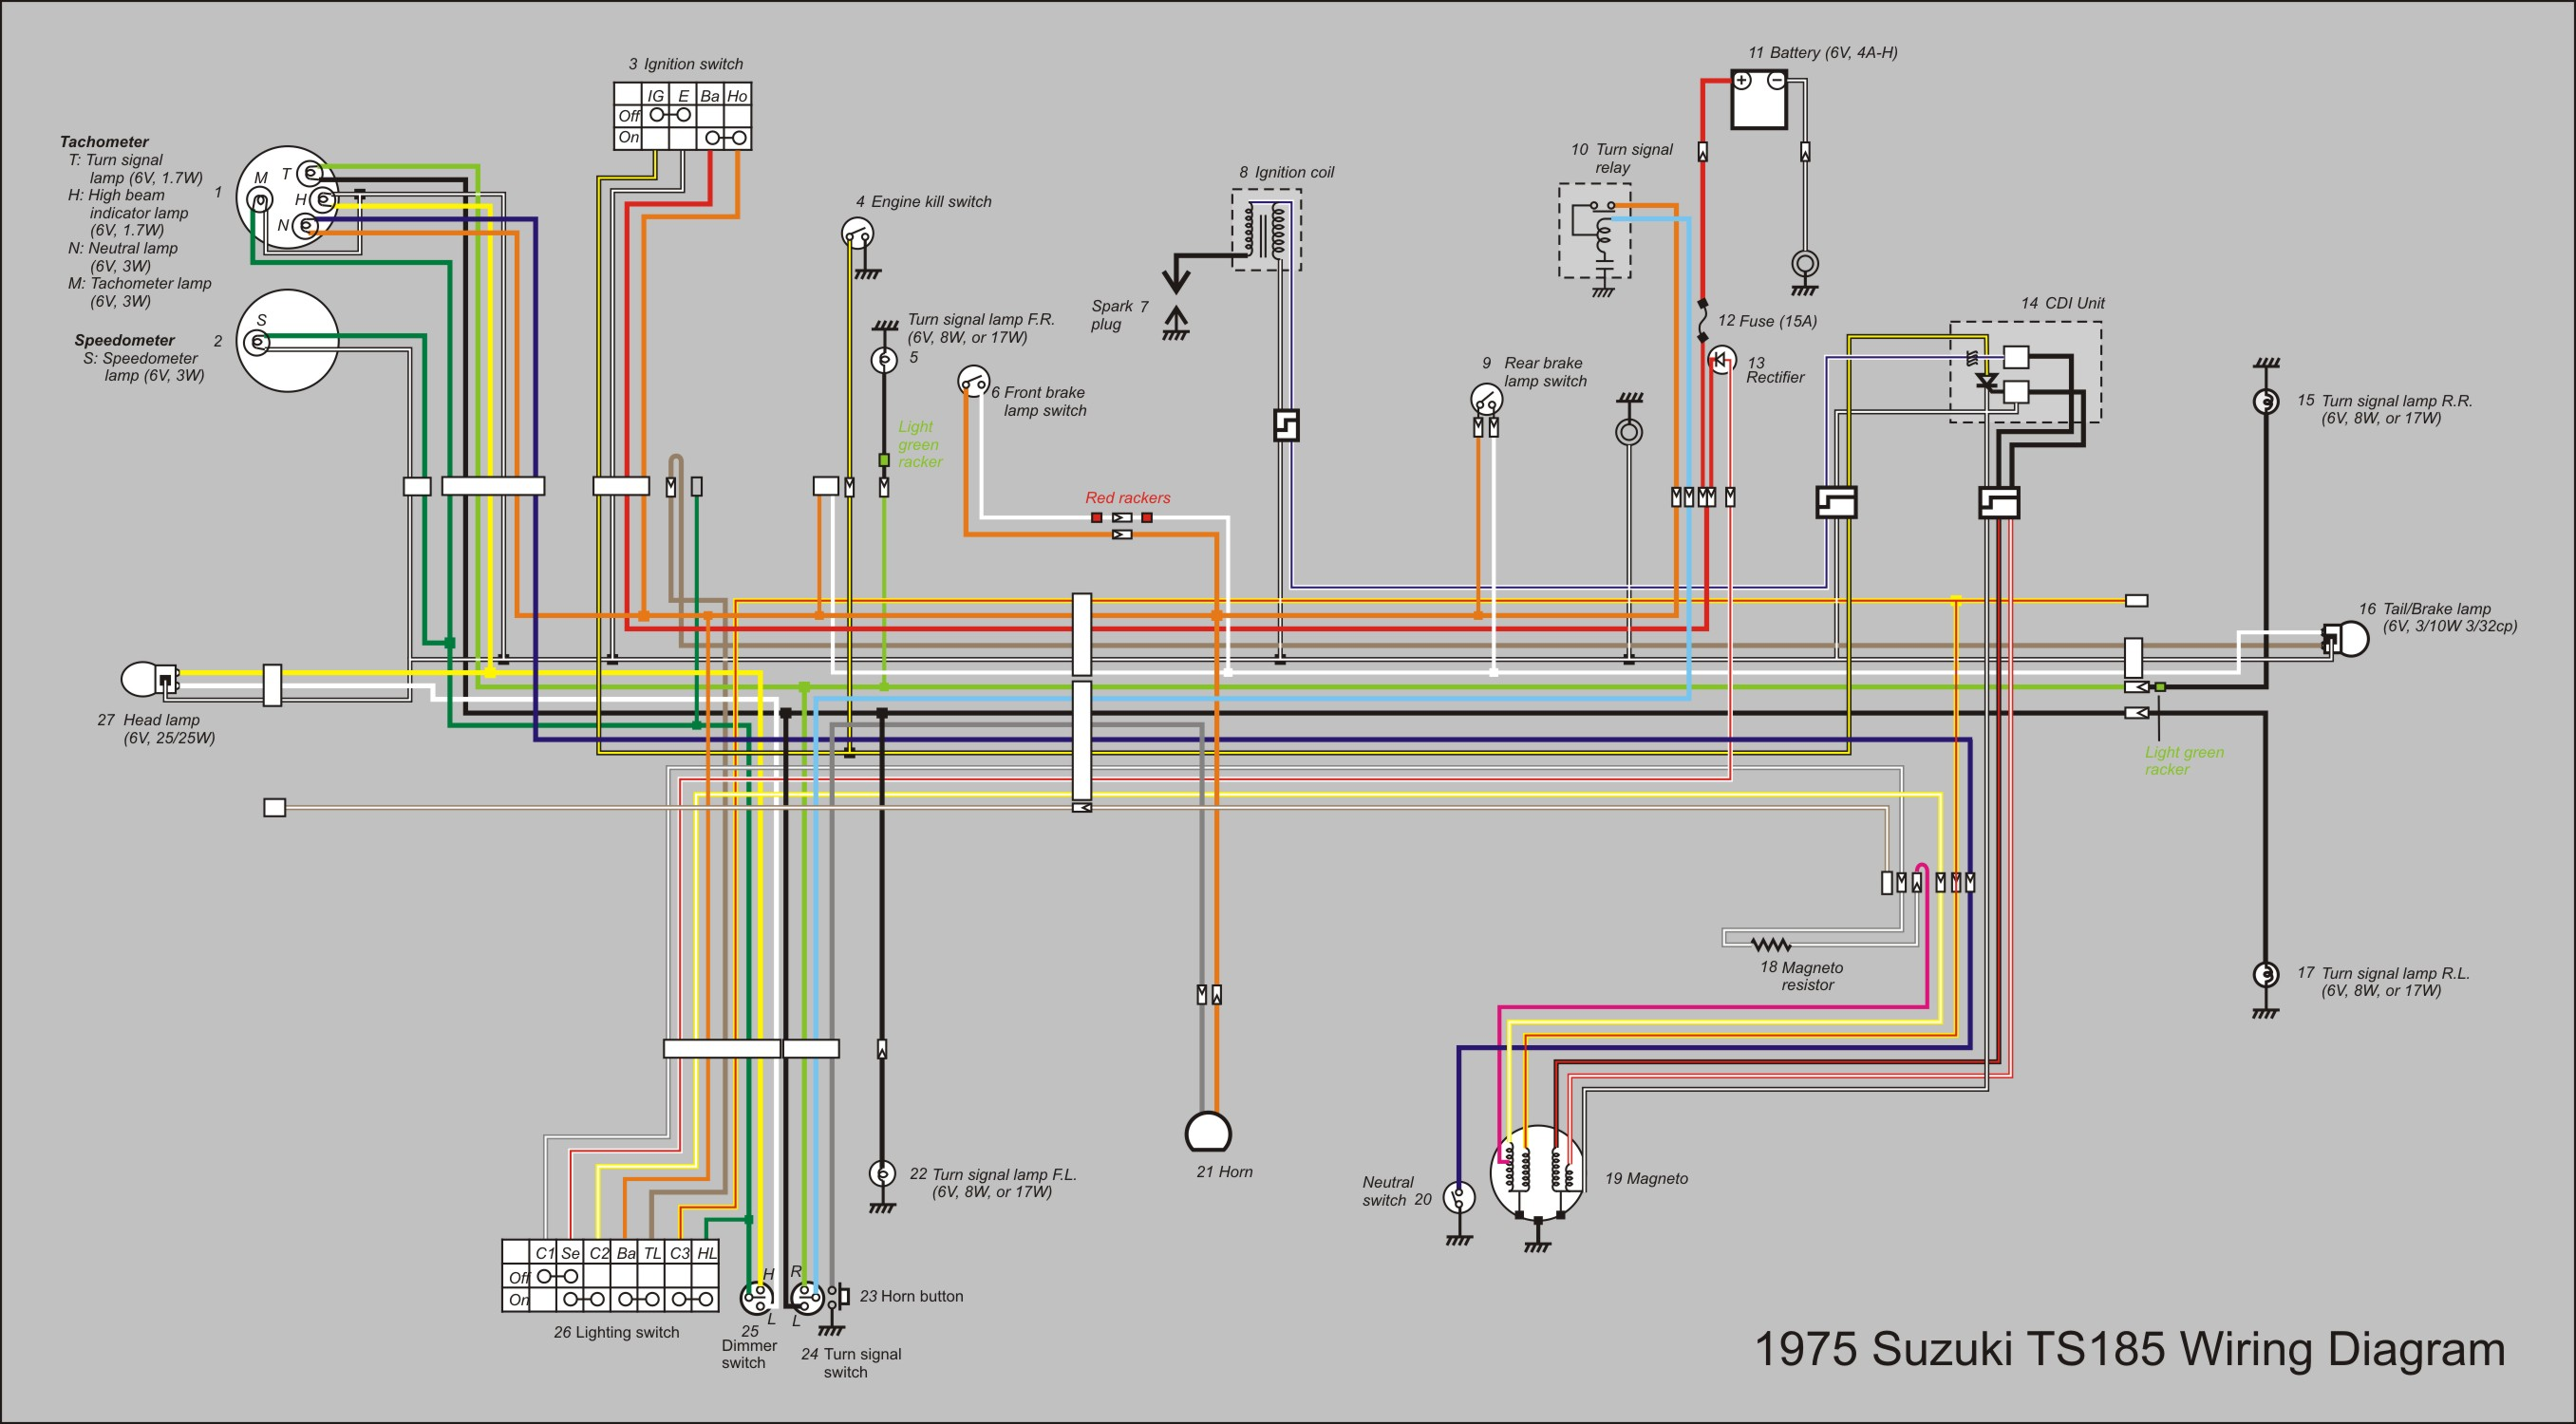 TS185_Wiring_Diagram_new file ts185 wiring diagram new jpg wikimedia commons suzuki ts185er wiring diagram at gsmx.co